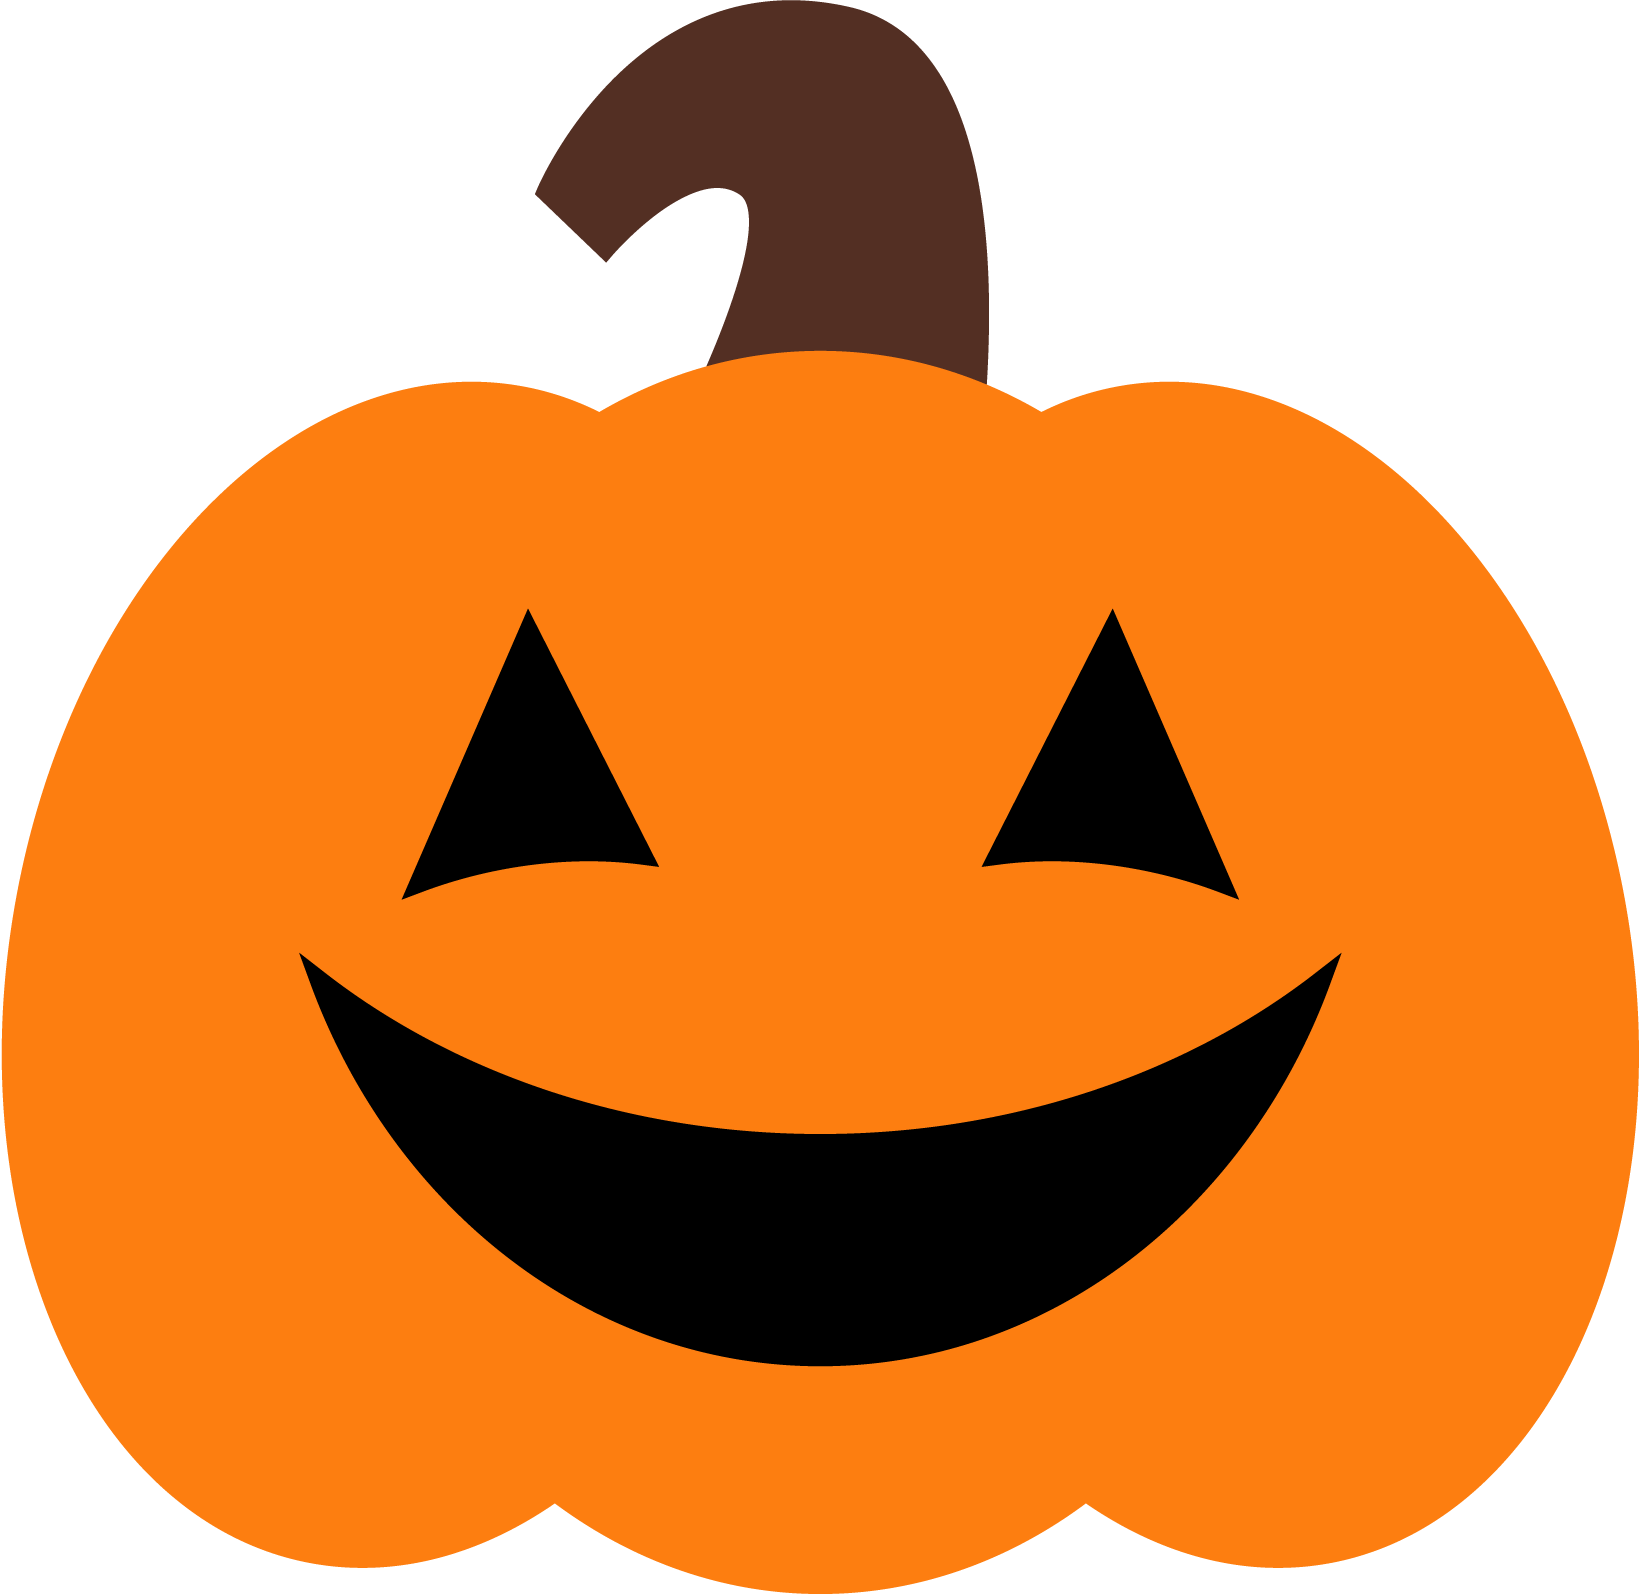 Halloween at getdrawings com. Pumpkin clipart graphic free